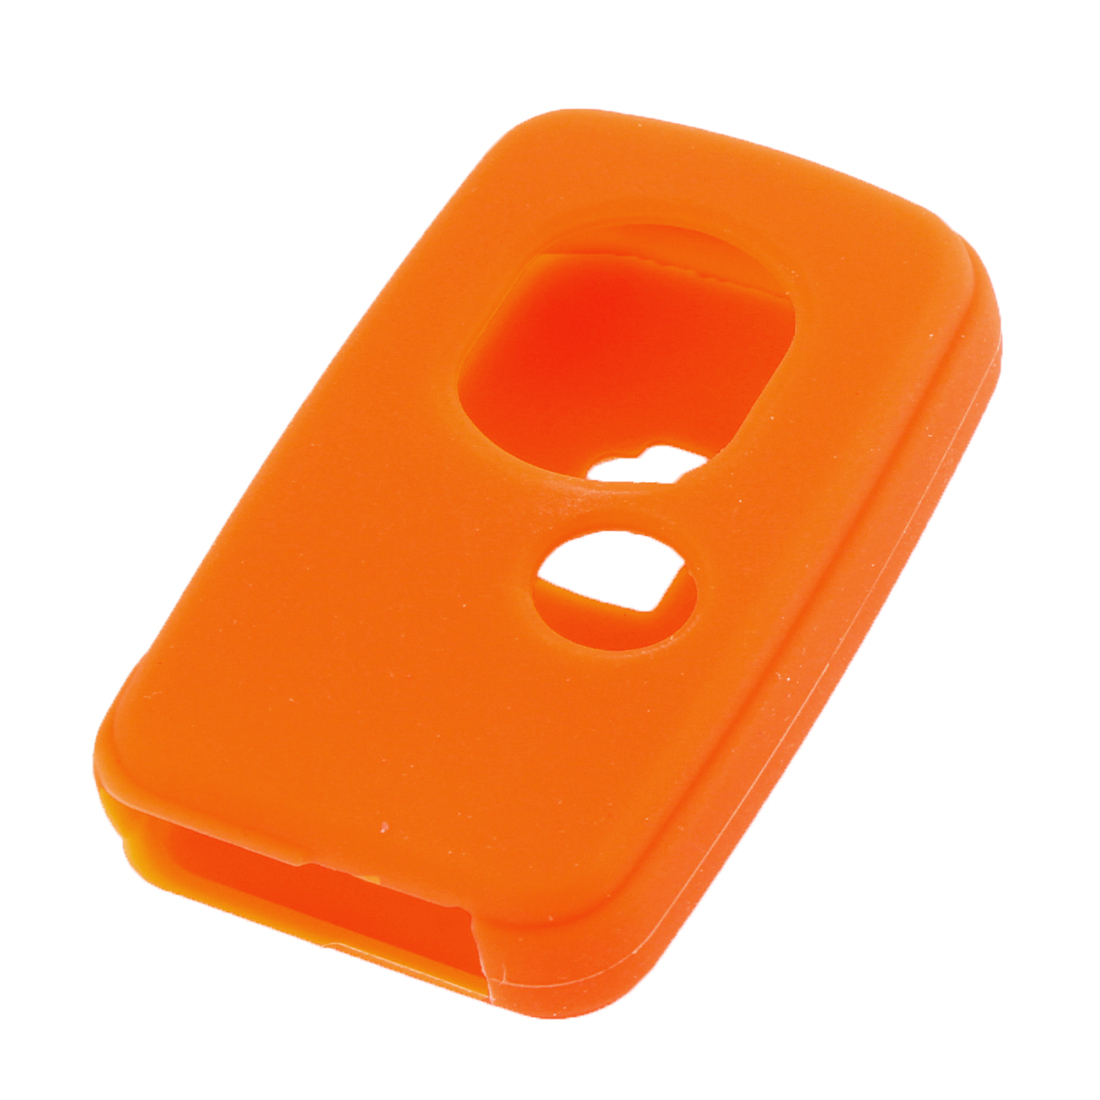 Unique Bargains Soft Silicone Vehicles Key Case Cover Shell Orange for